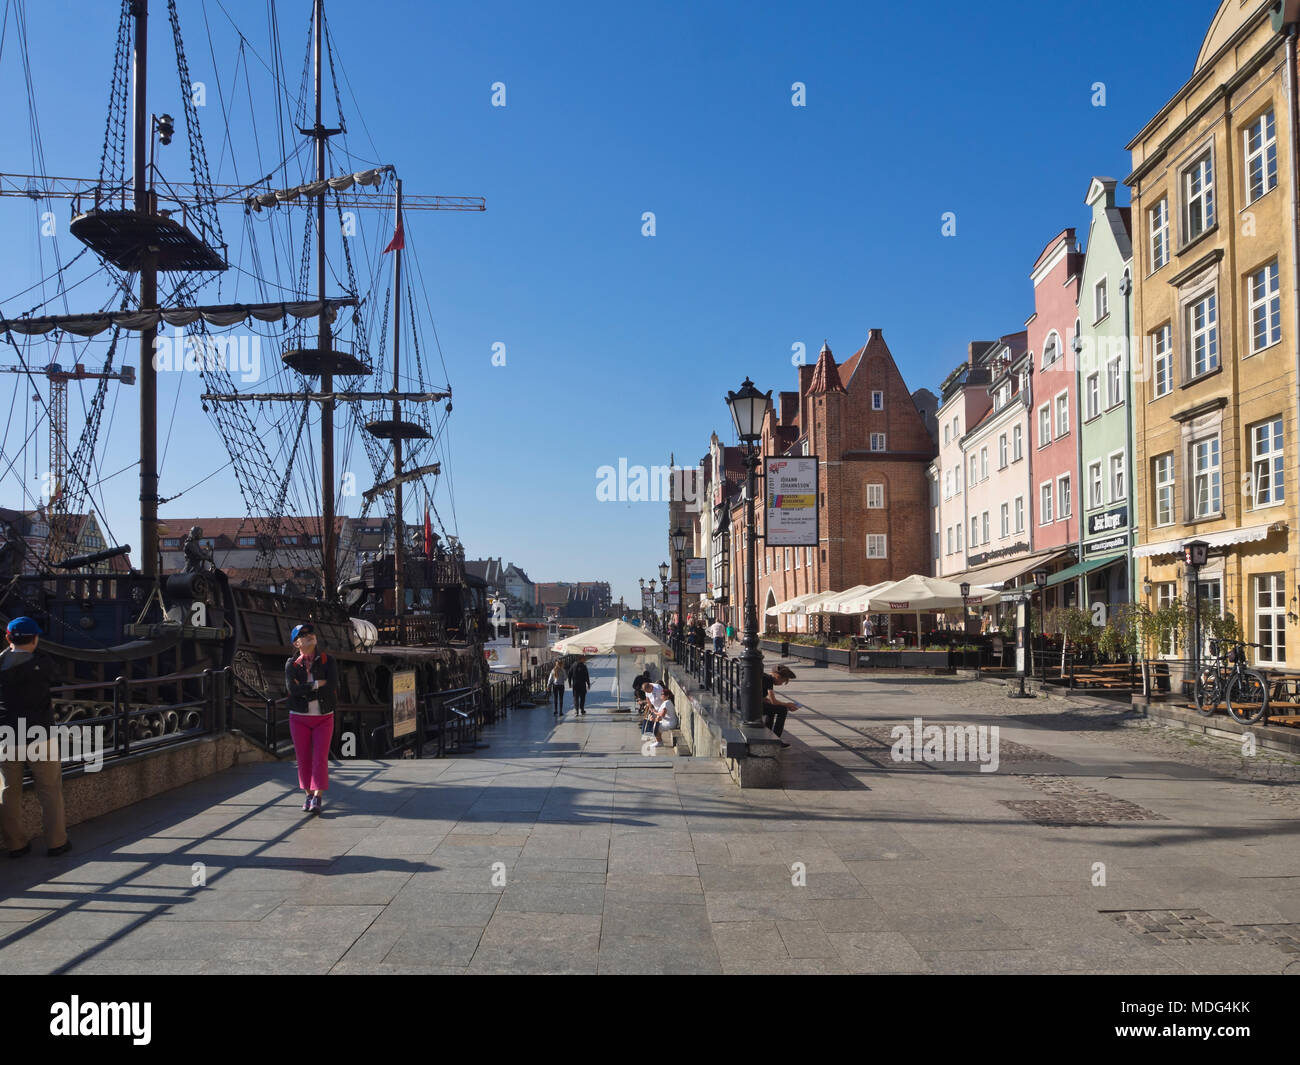 Historic vessel rebuilt for sightseeing tours on the river Motlawa and along the Baltic coast, harbour in the old town, Gdansk Poland Stock Photo